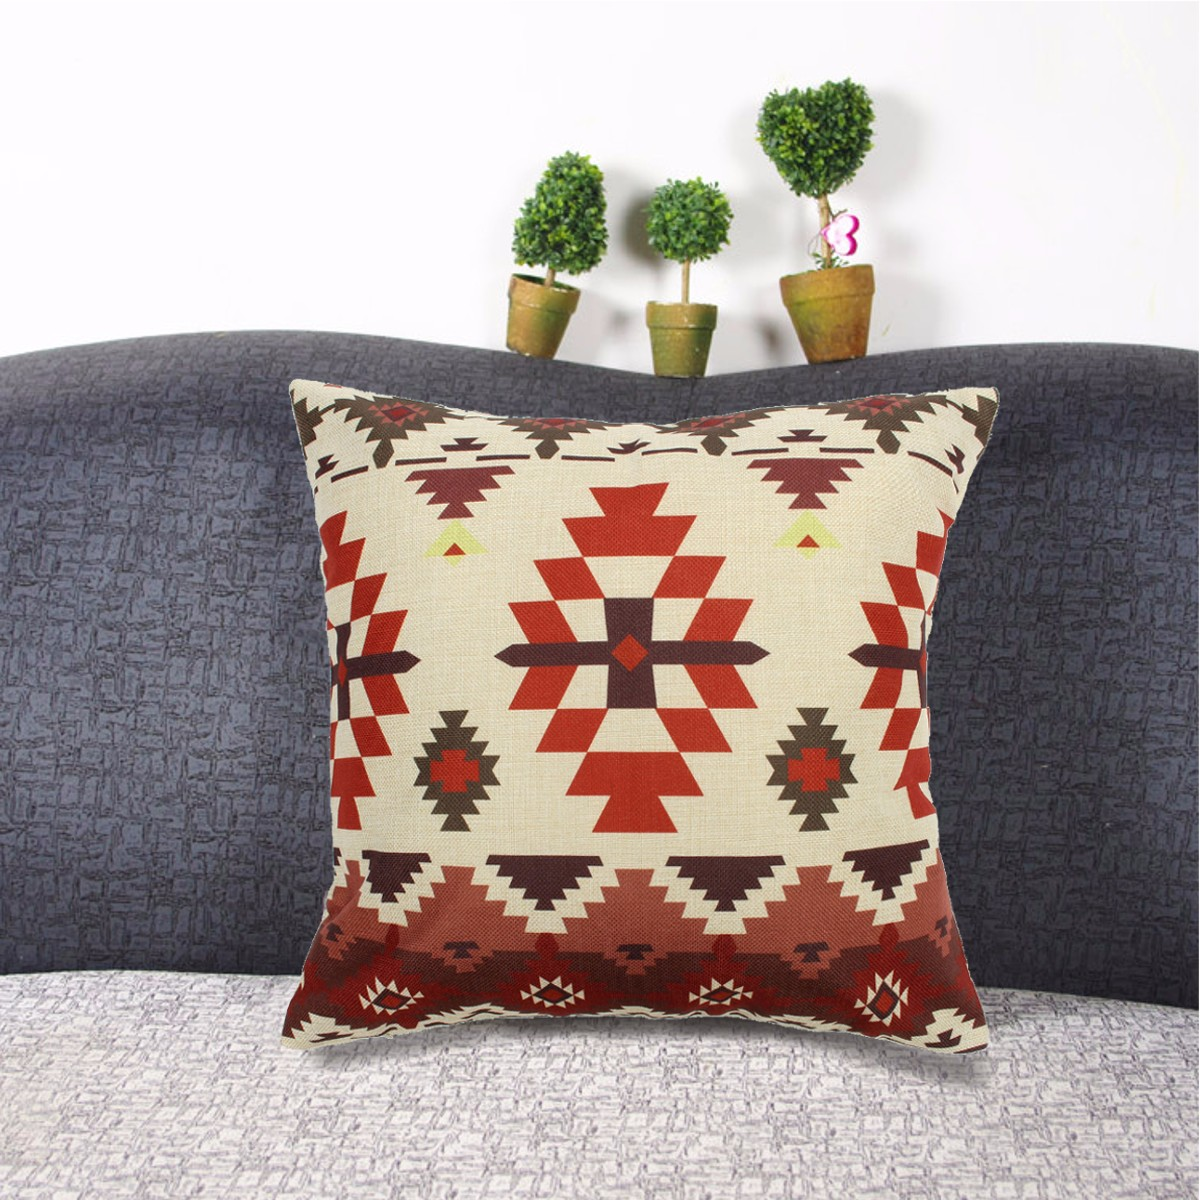 Aztec Geometric Abstract Linen Cotton Cushion Cover Throw Pillow Home Decor ,#3 color by